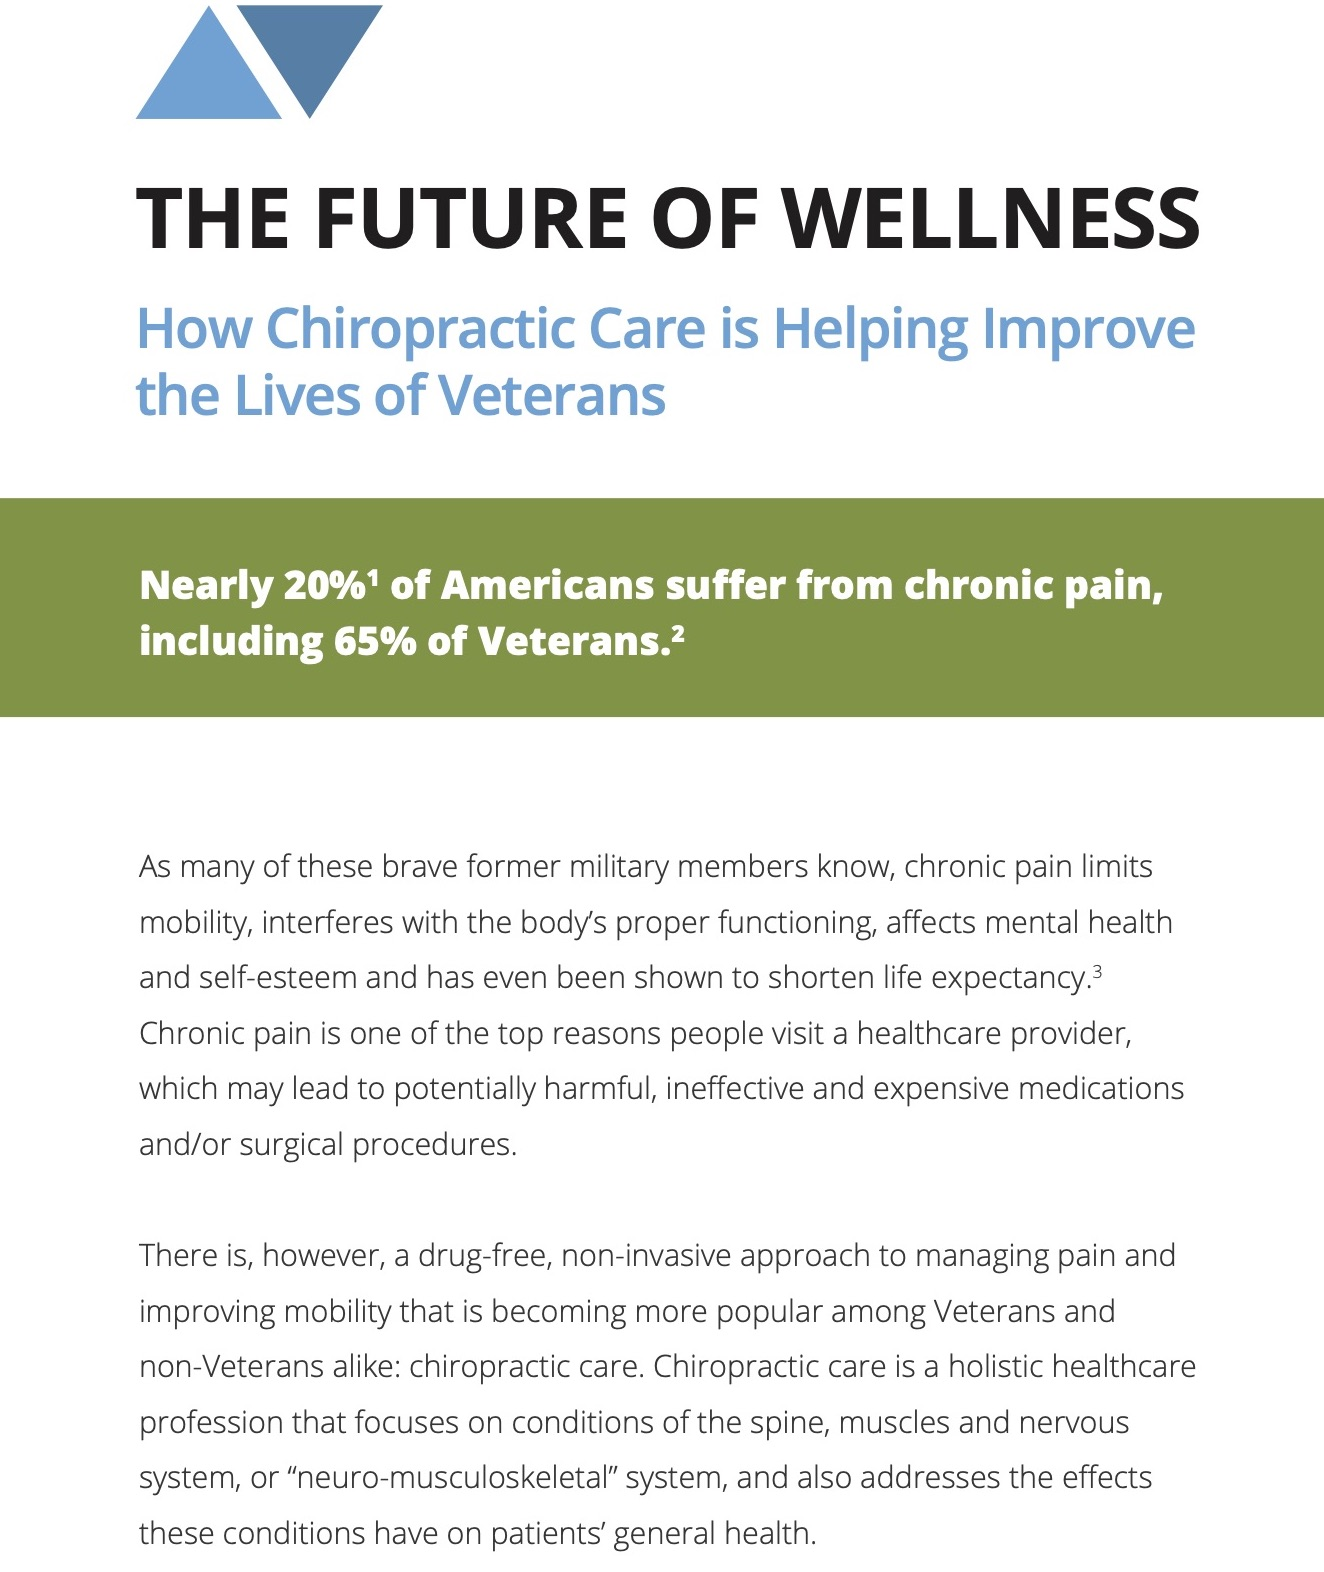 F4CP-138-The-Future-of-Wellness-White-Paper-ONLINE